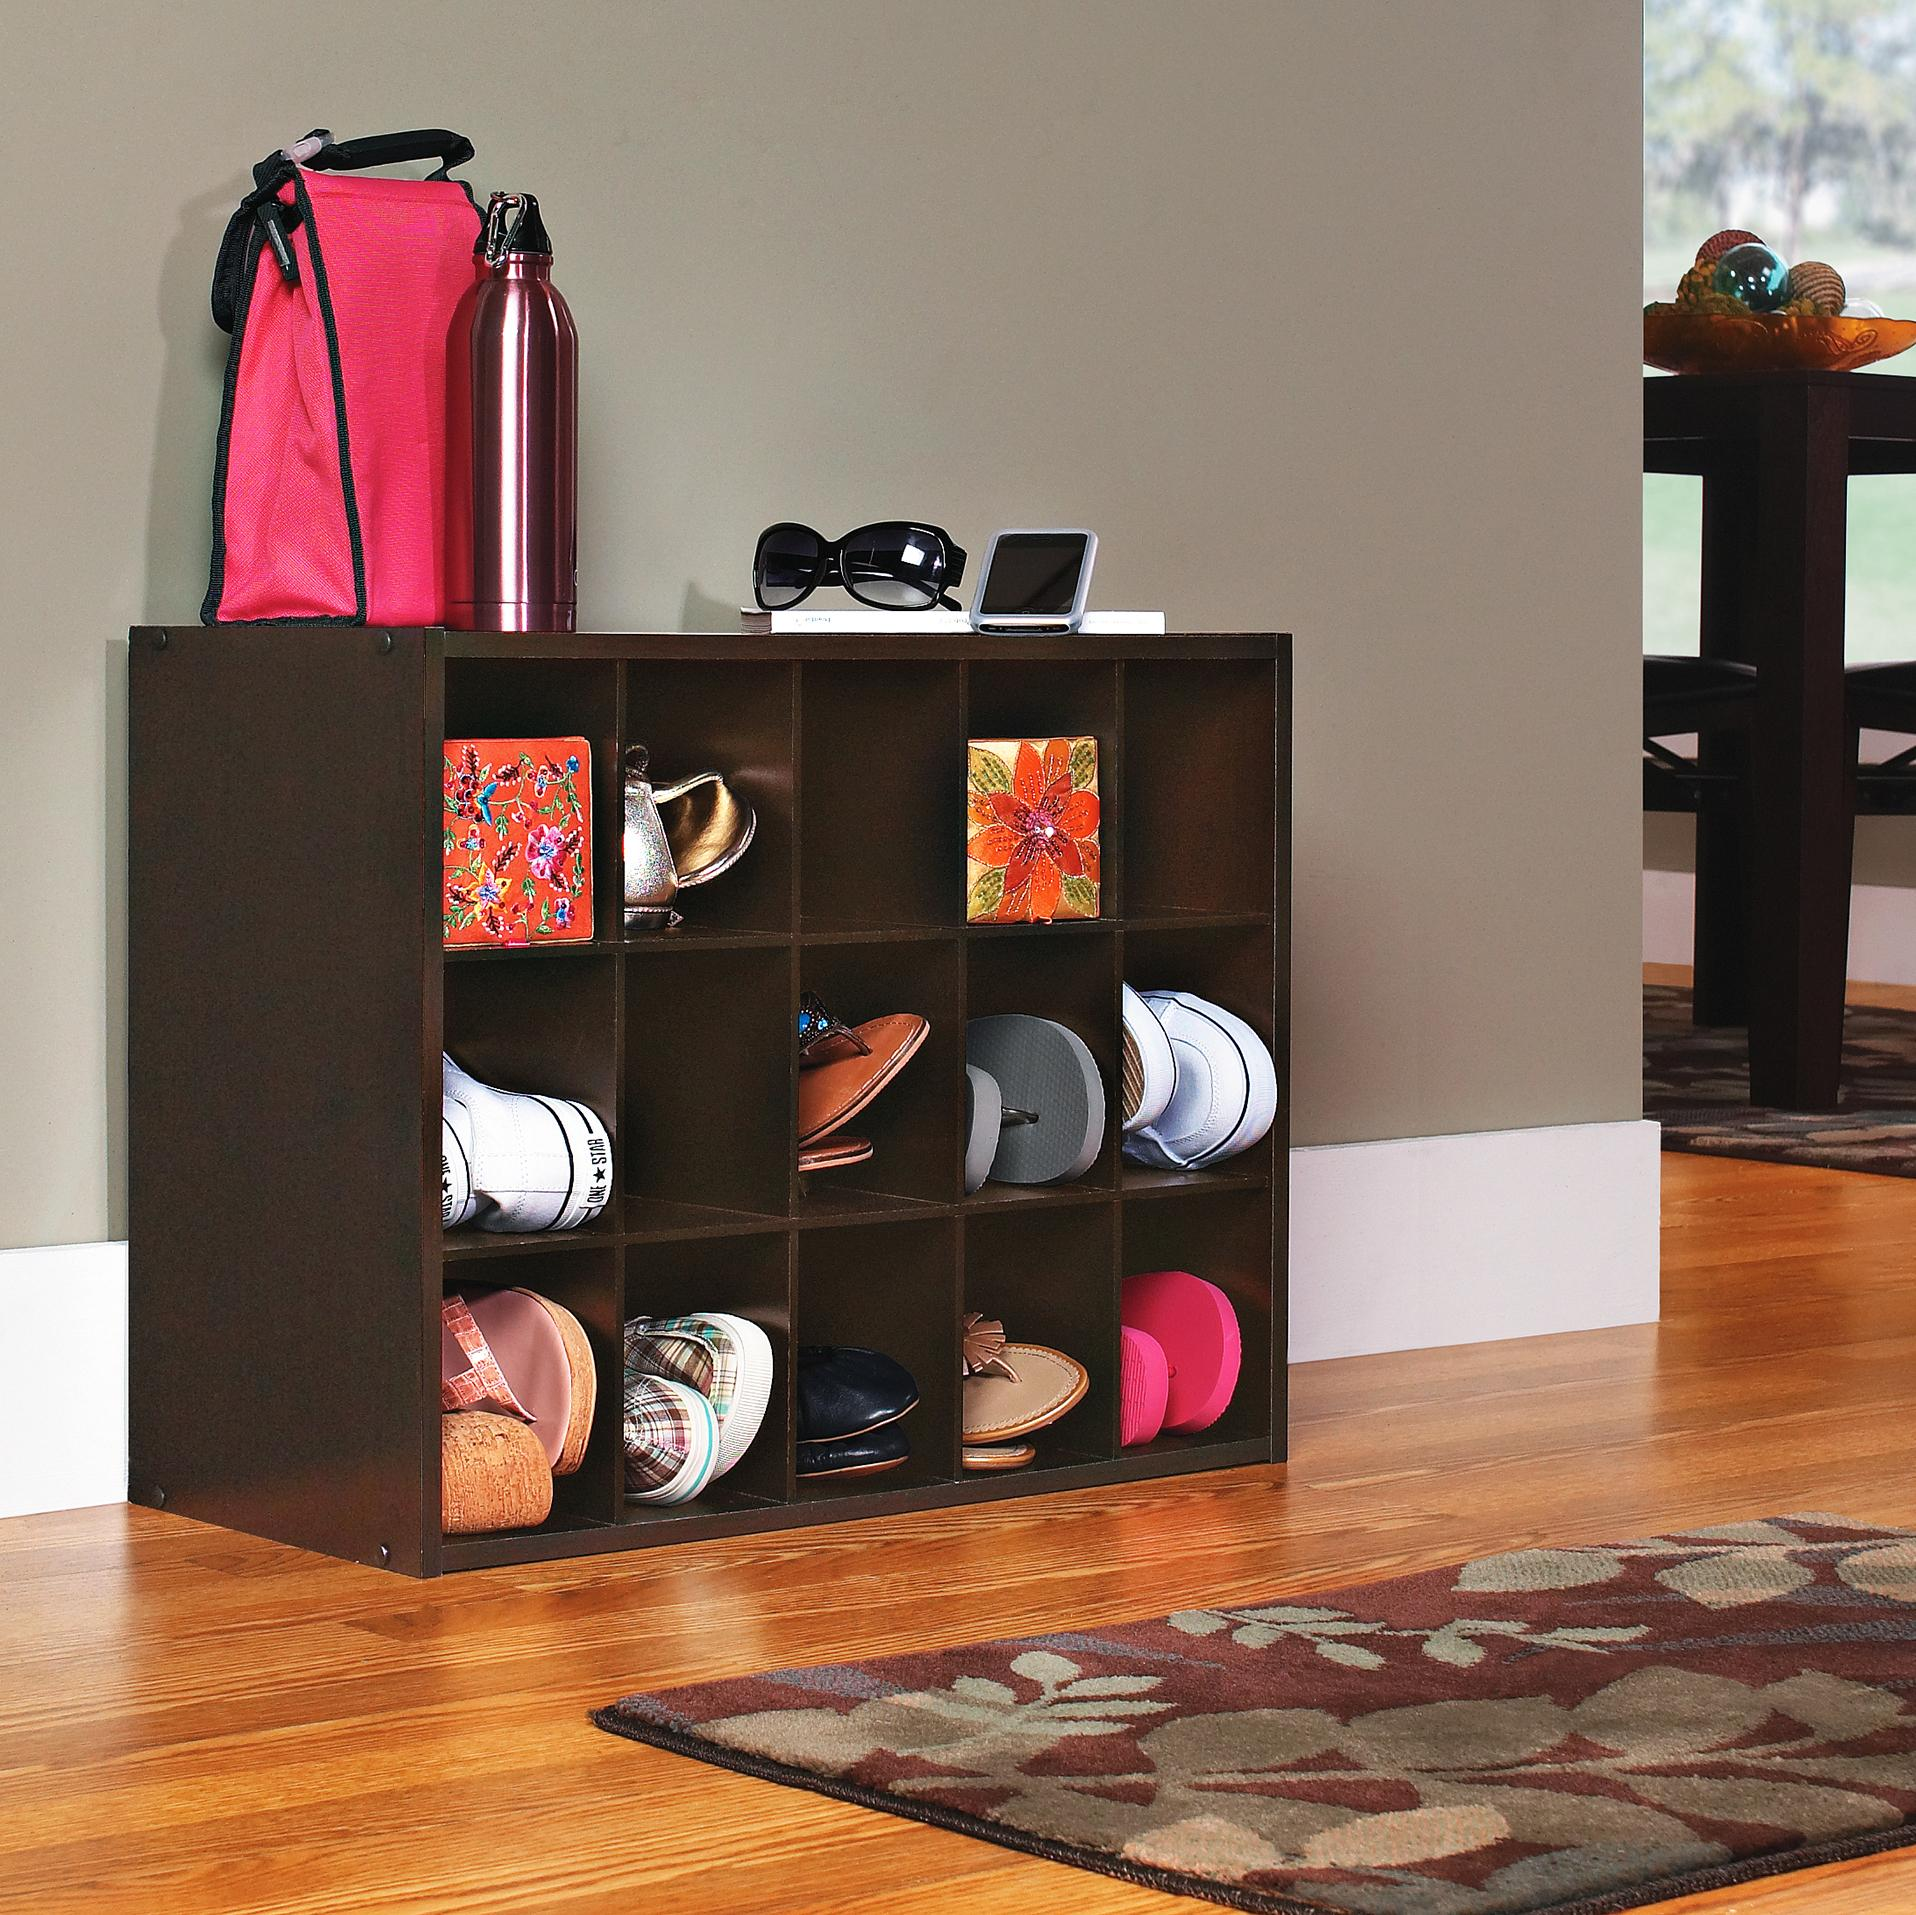 Mudroom Storage, Entryway Storage, Bedroom Storage, Cubes For Shoes